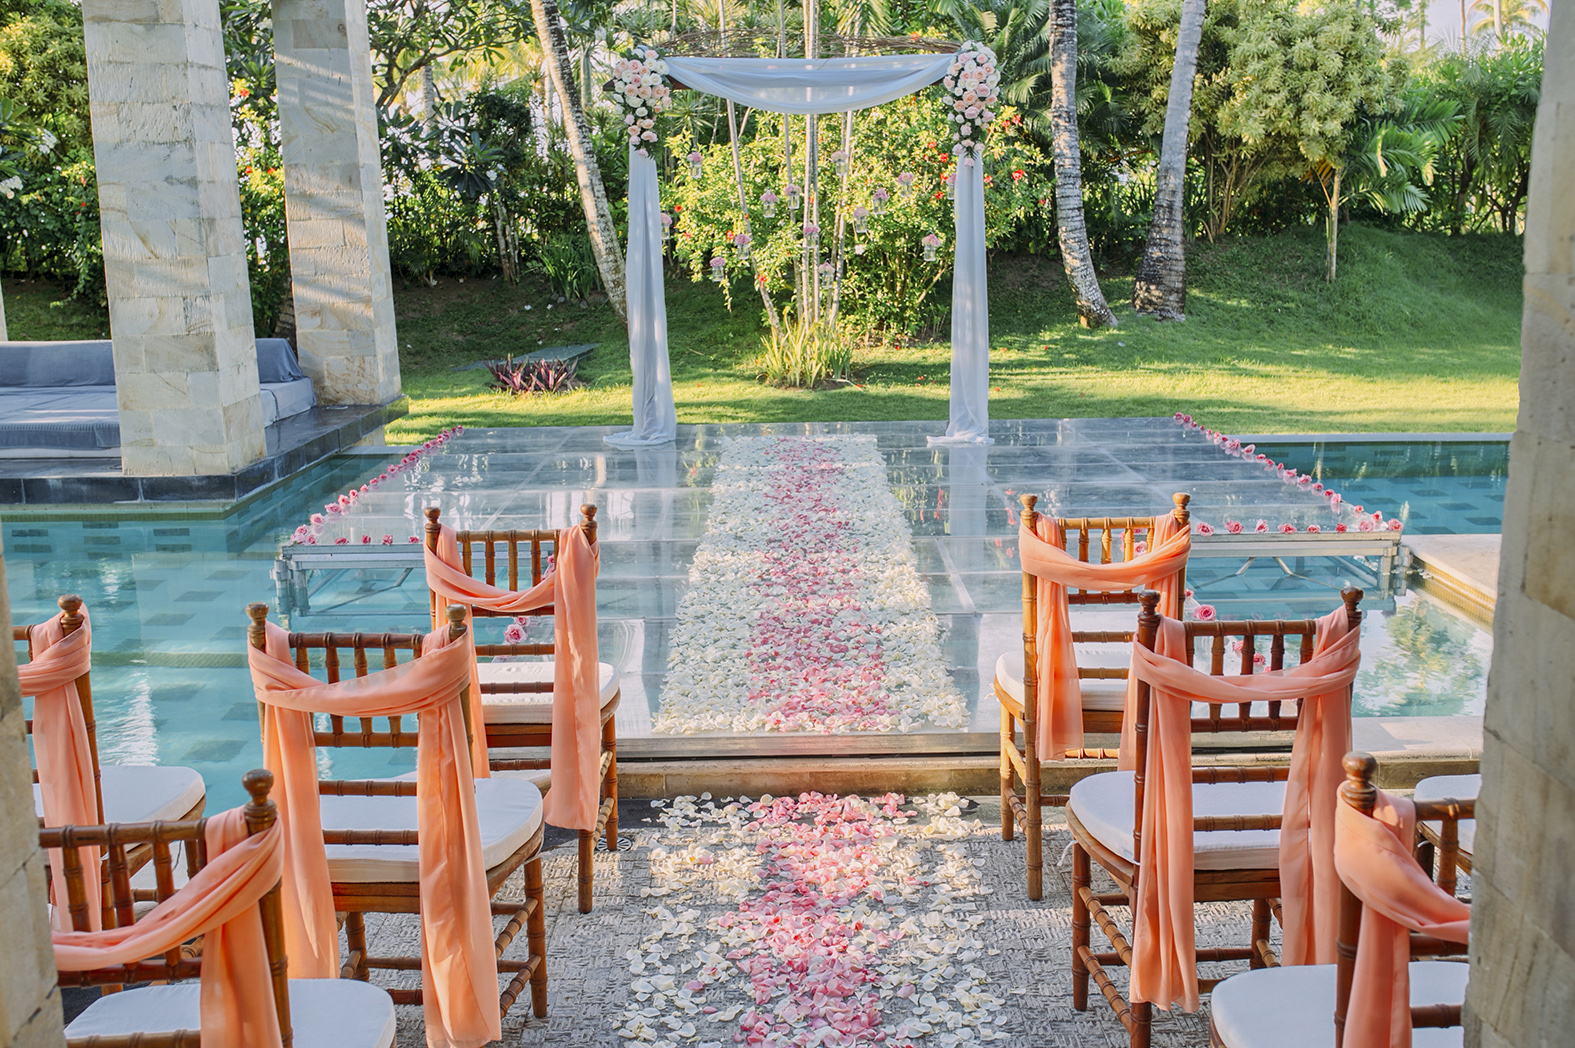 MAKE YOUR DREAMS COME TRUE WITH A 'KAMITA VILLA WEDDING' AT INTERCONTINENTAL BALI RESORT